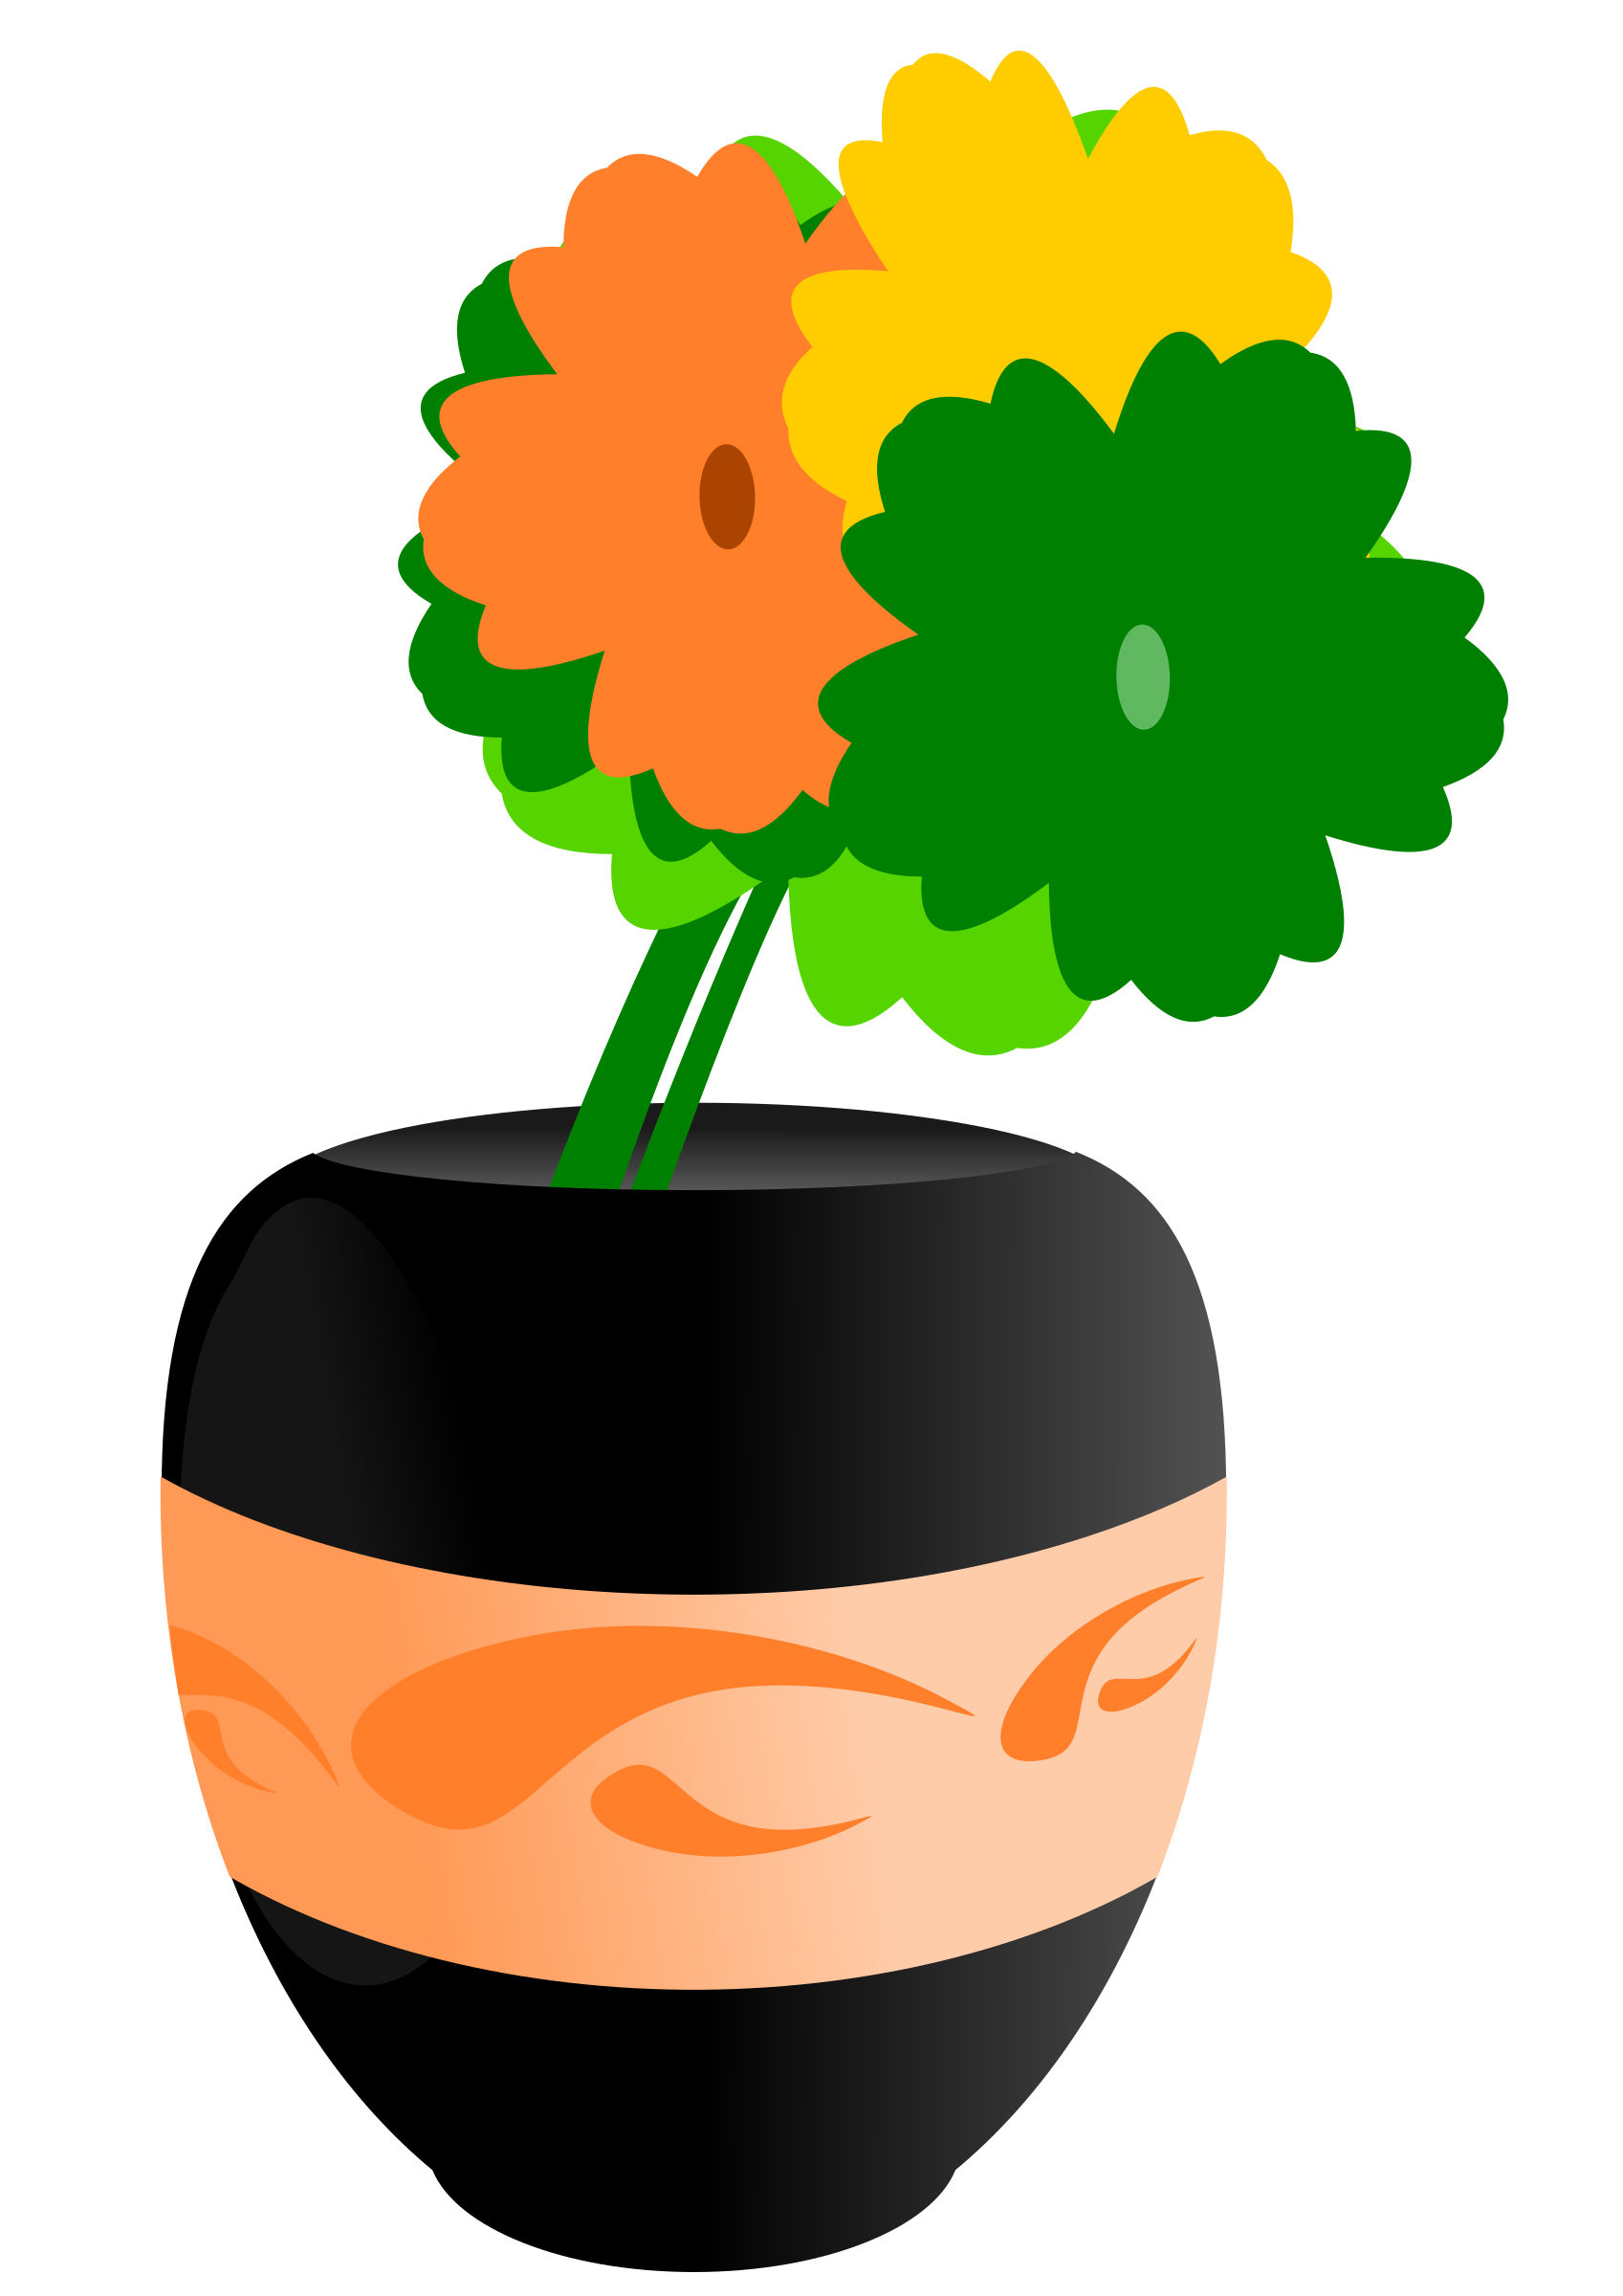 Flower vase clipart clipart royalty free library Clipart - Flowers clipart royalty free library